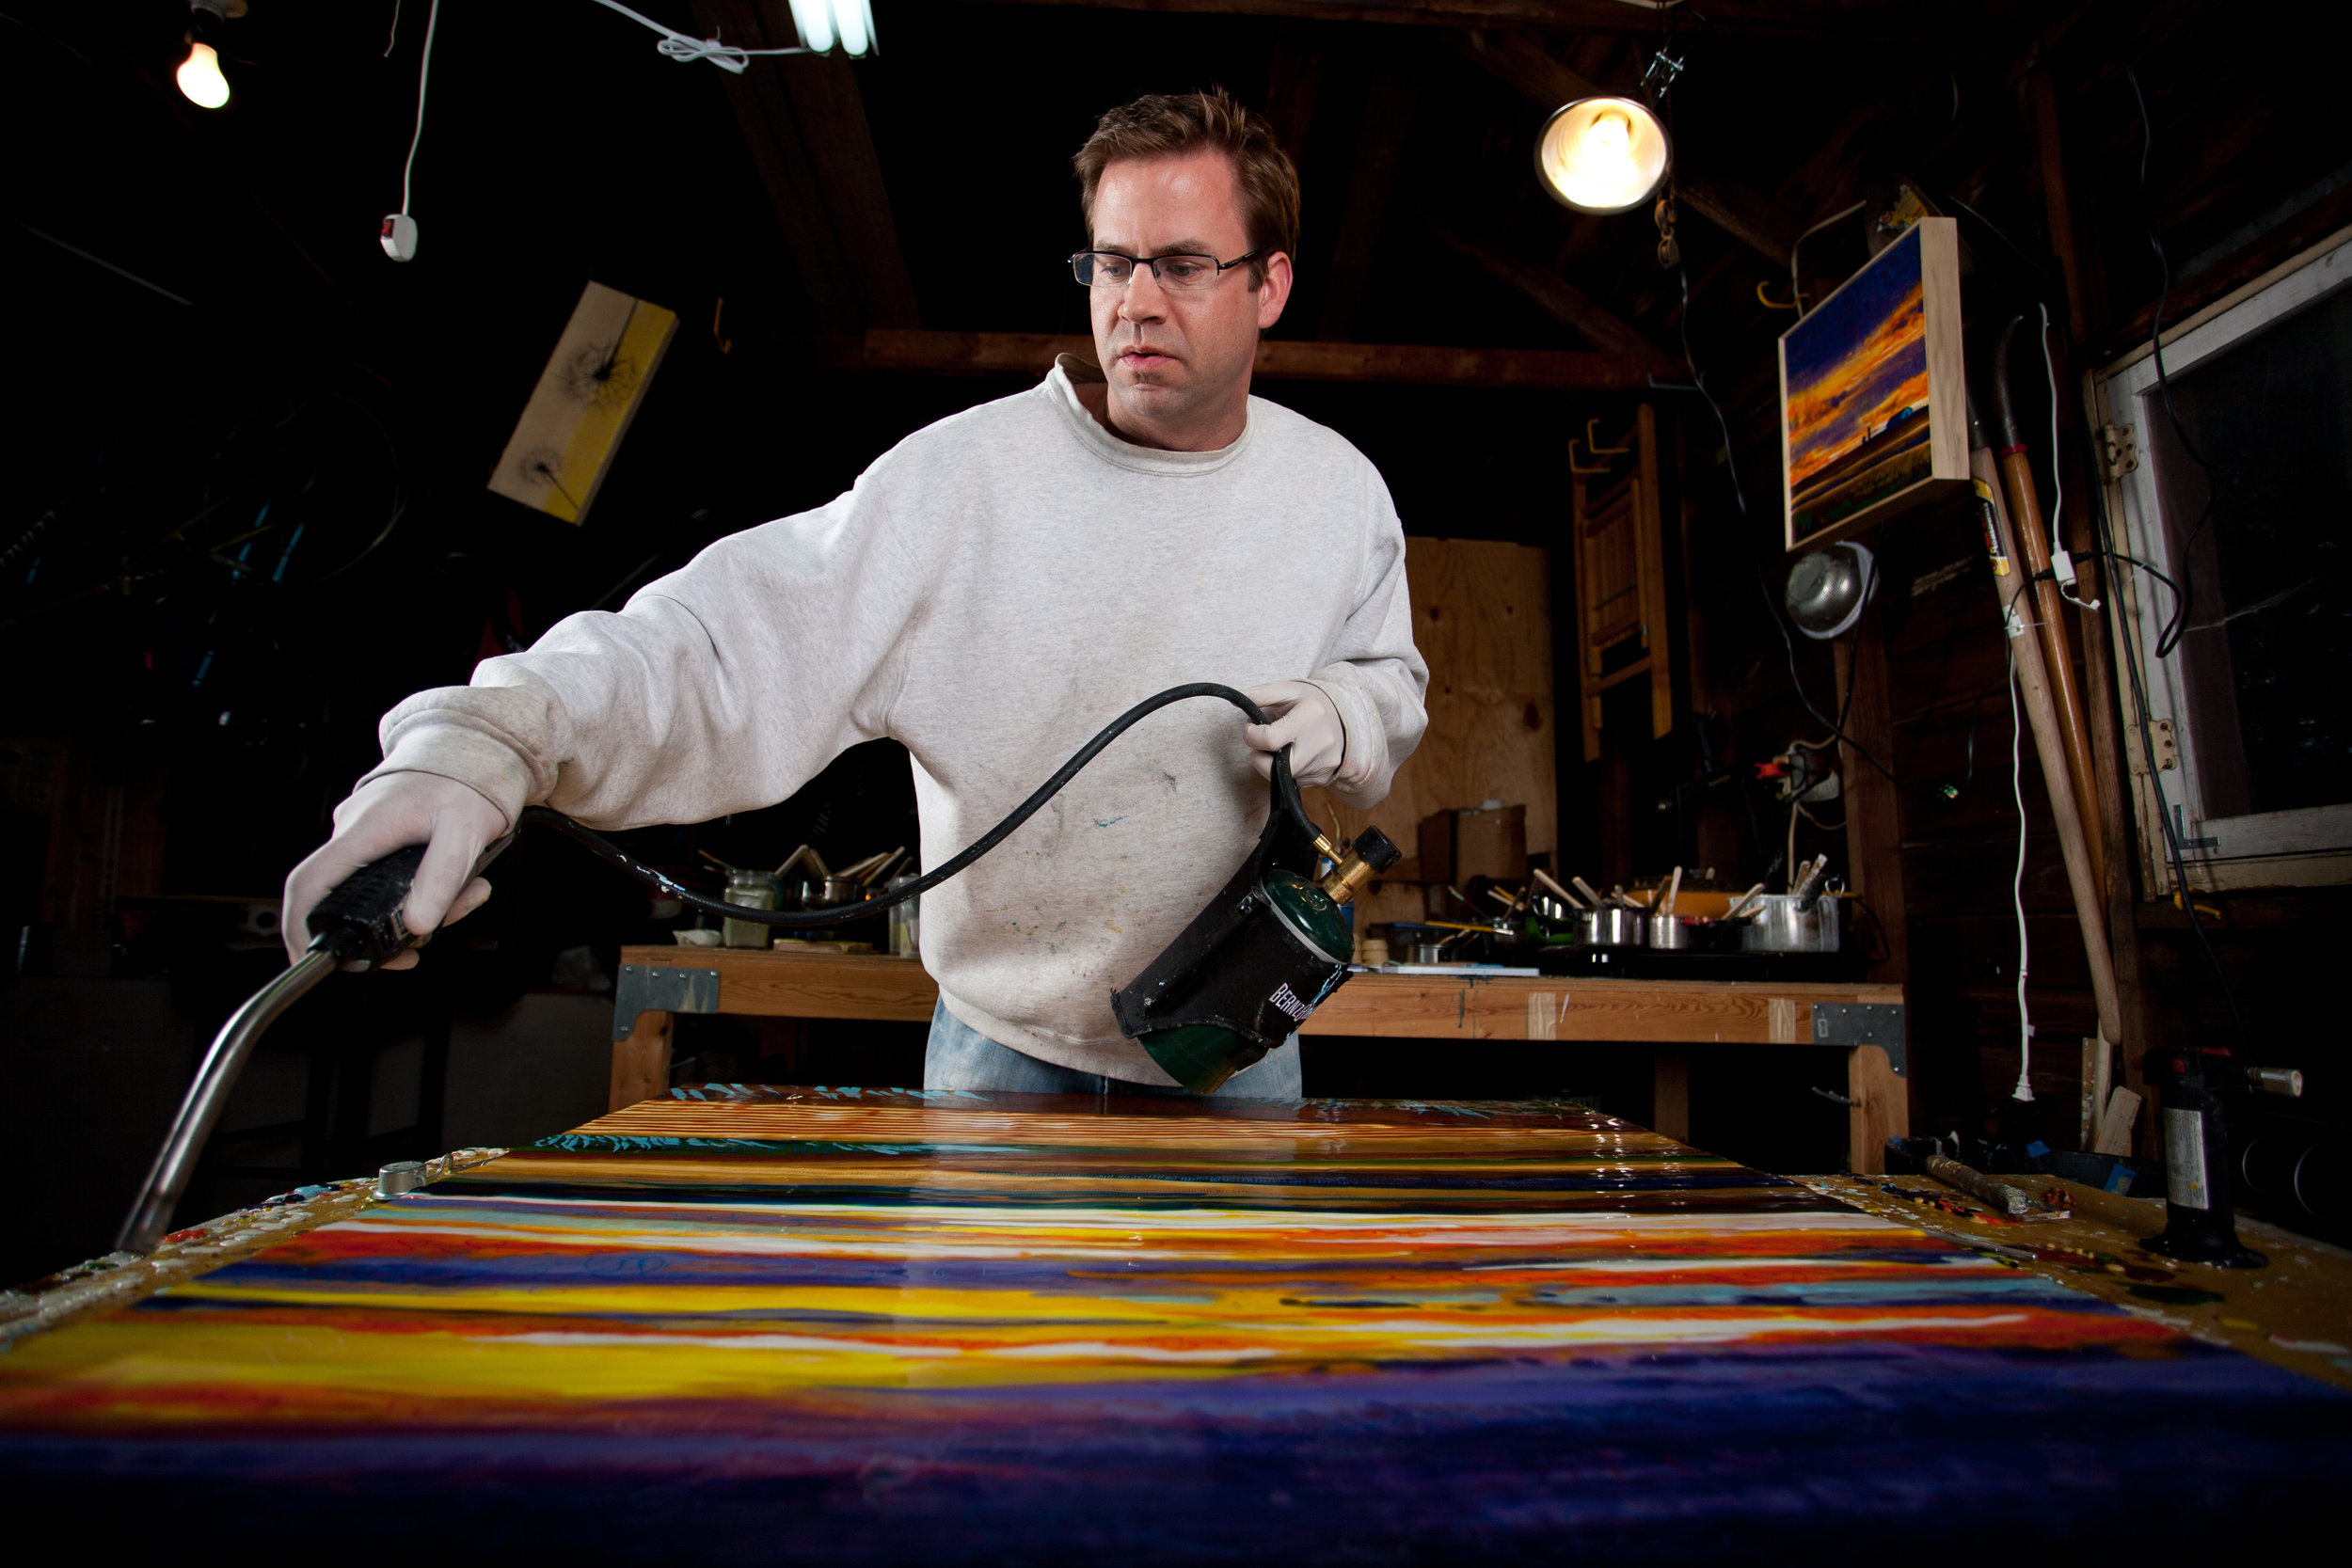 Chris spends his evenings creating new works in his studio garage. Photo by    Zach Johnson